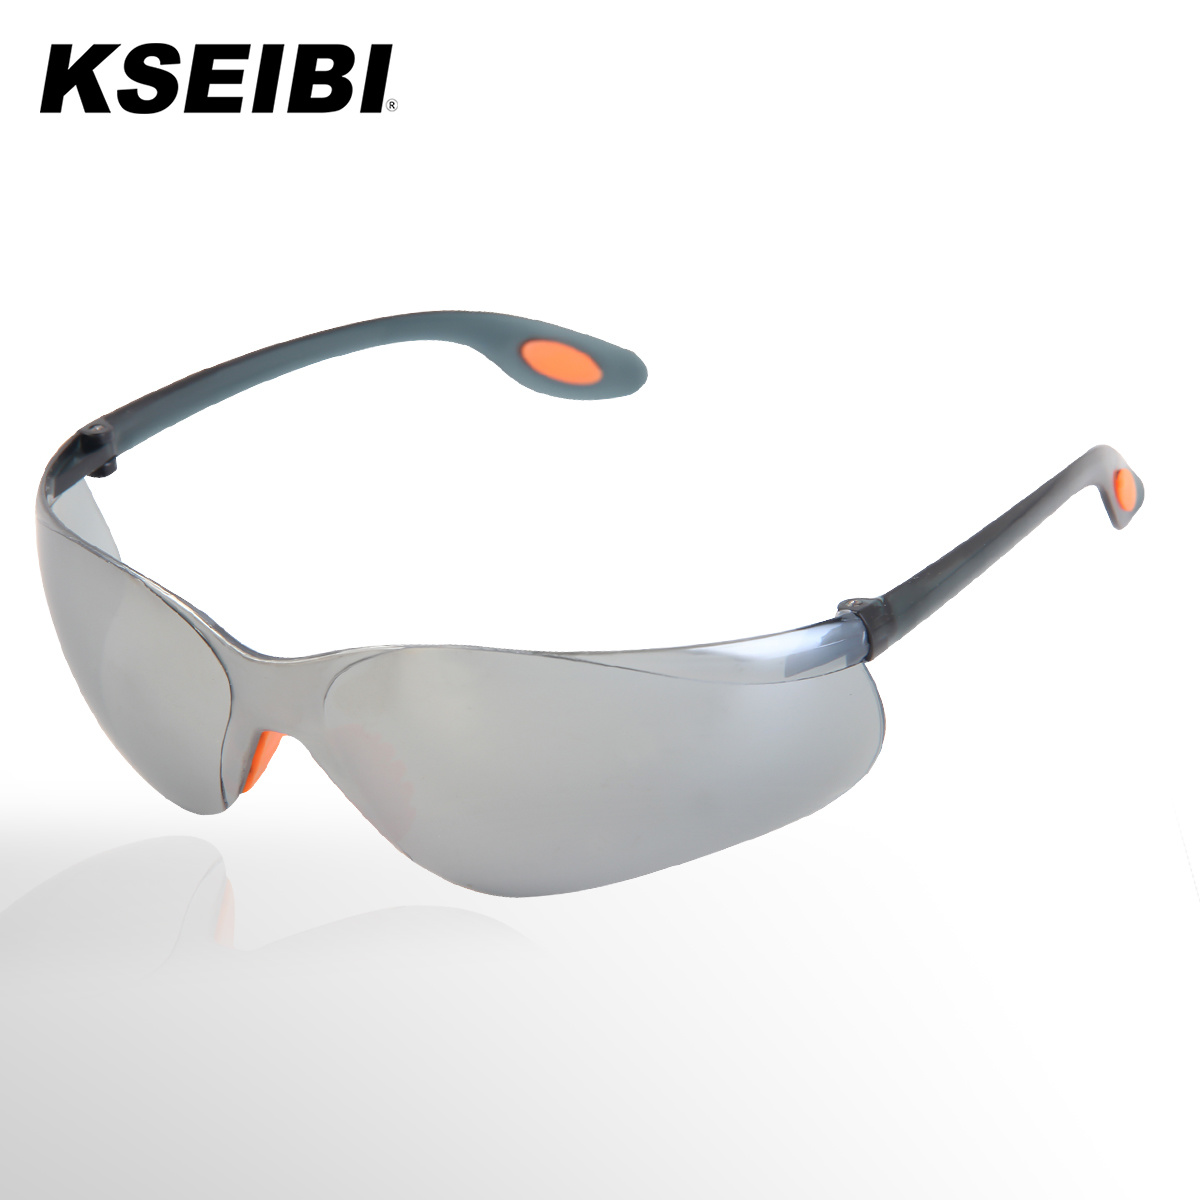 China Kseibi Industrial Safety Glasses Protective Goggles For Construction Eye Protection China Safety Glasses And Safety Goggles Price